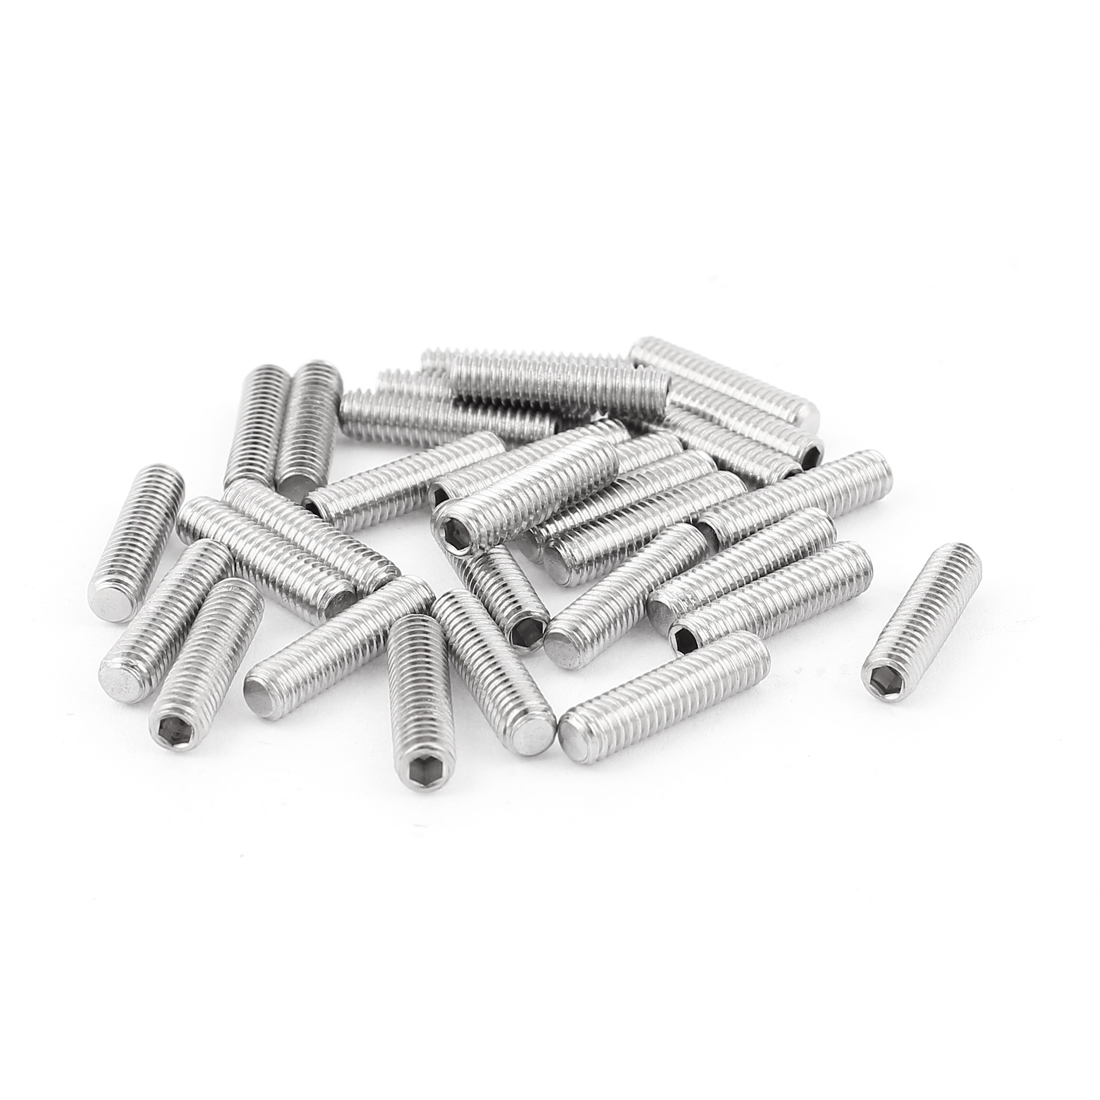 4mm x 16mm Stainless Steel Hexagon Socket Head Set Cup Point Grub Screws 30pcs